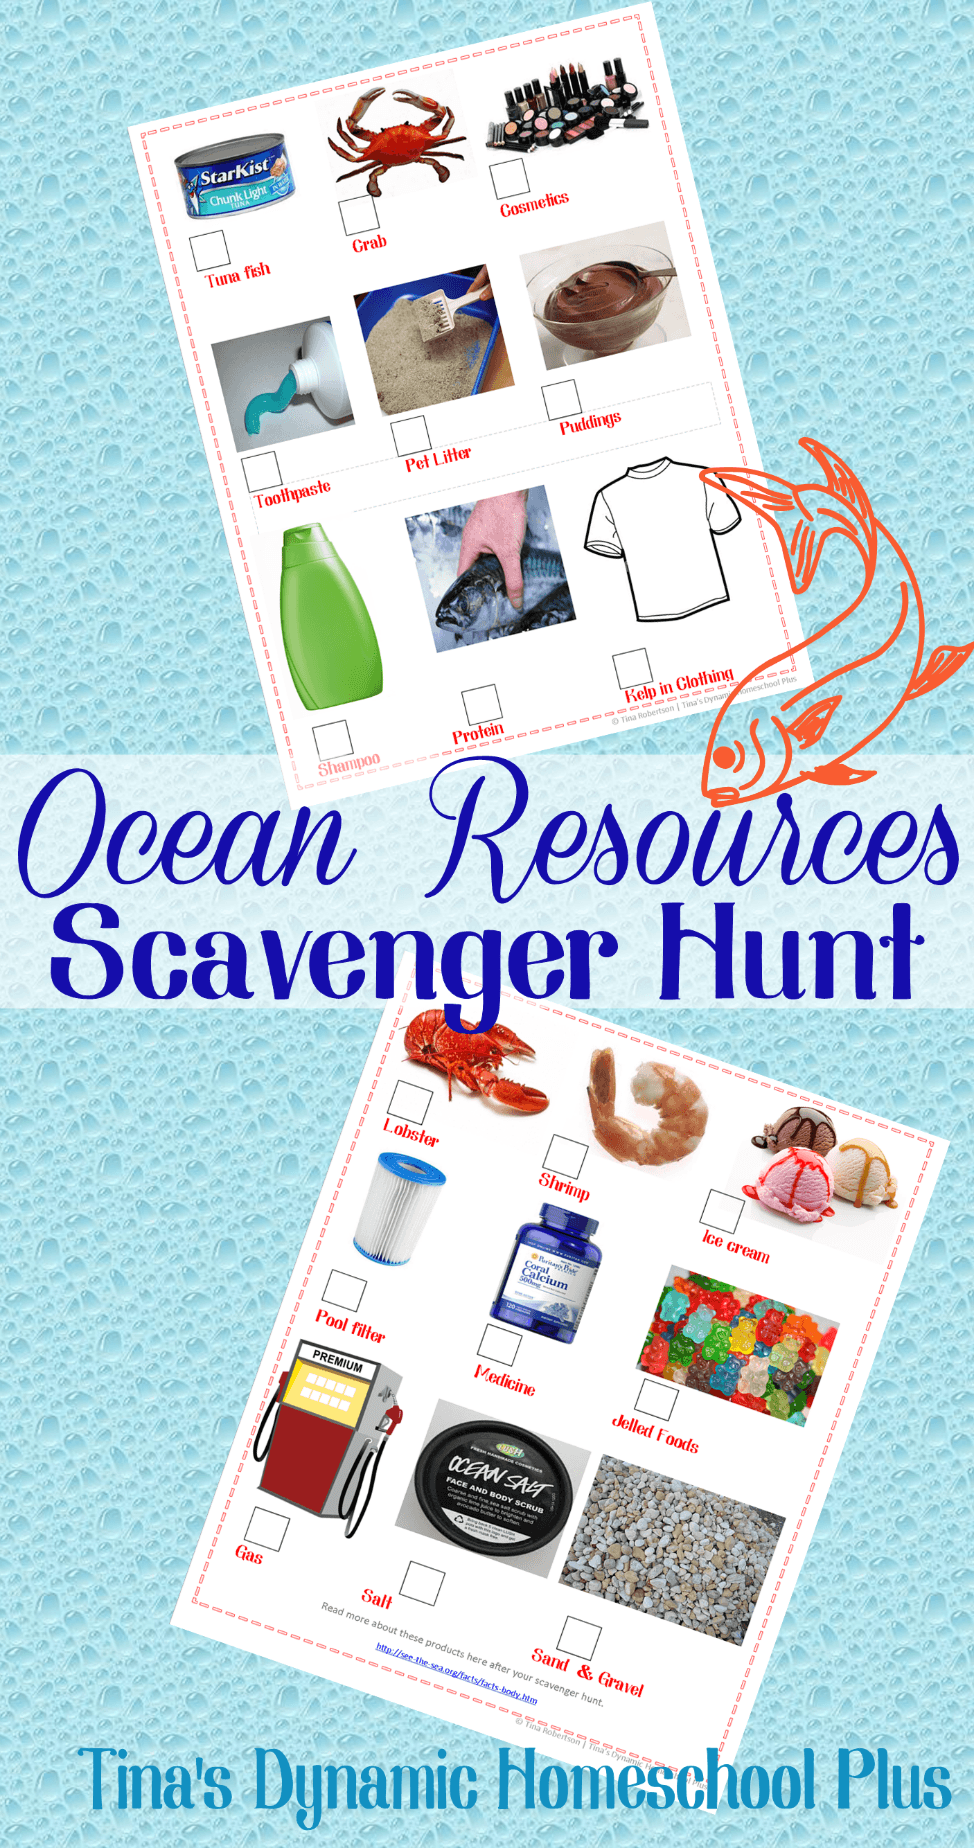 Ocean Resources Scavenger Hunt Collage